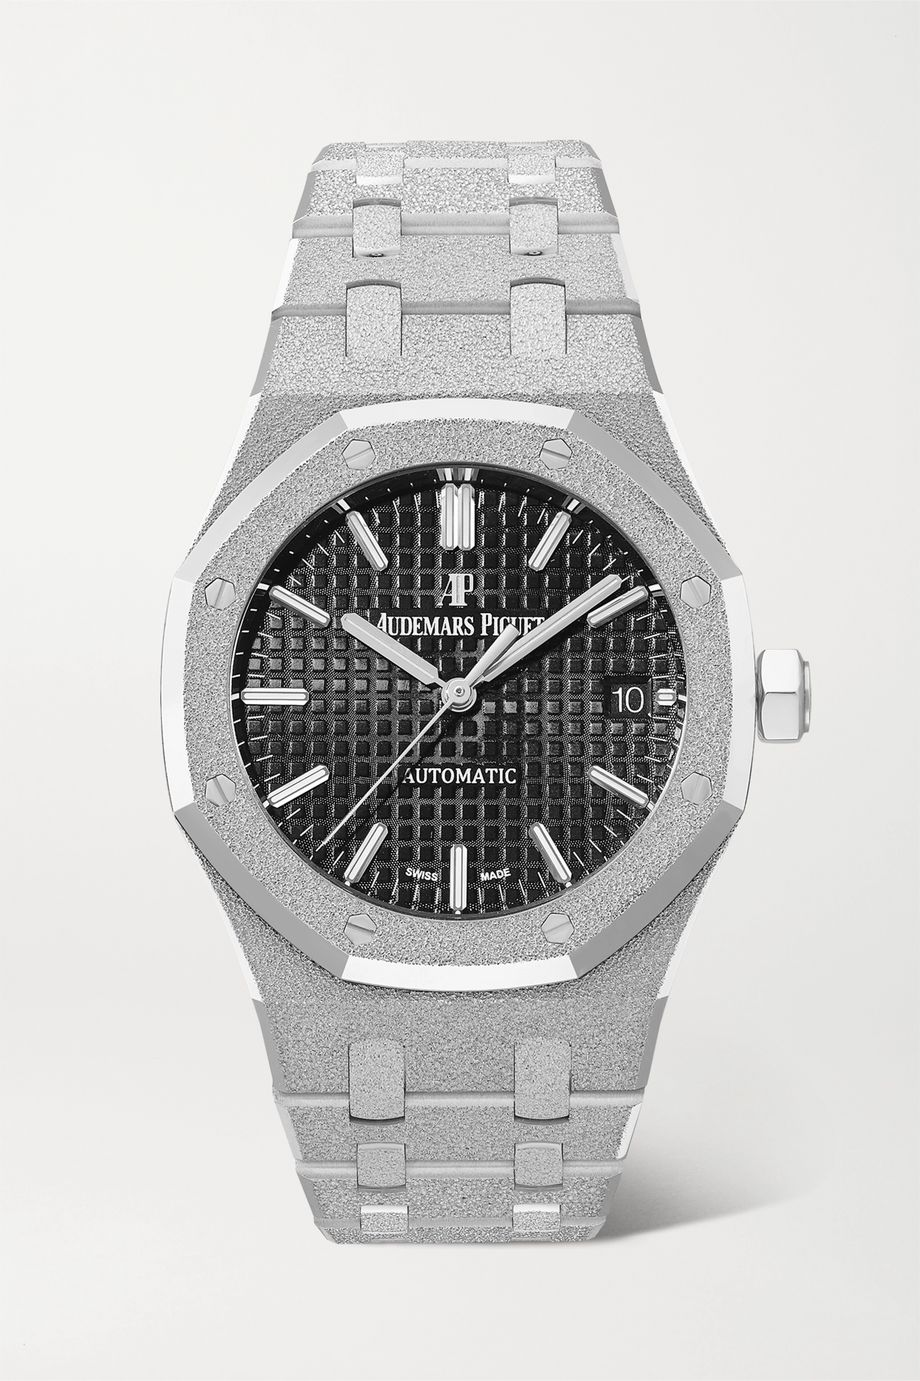 Audemars Piguet Montre en or gris 18 carats givré Royal Oak Automatique 37 mm